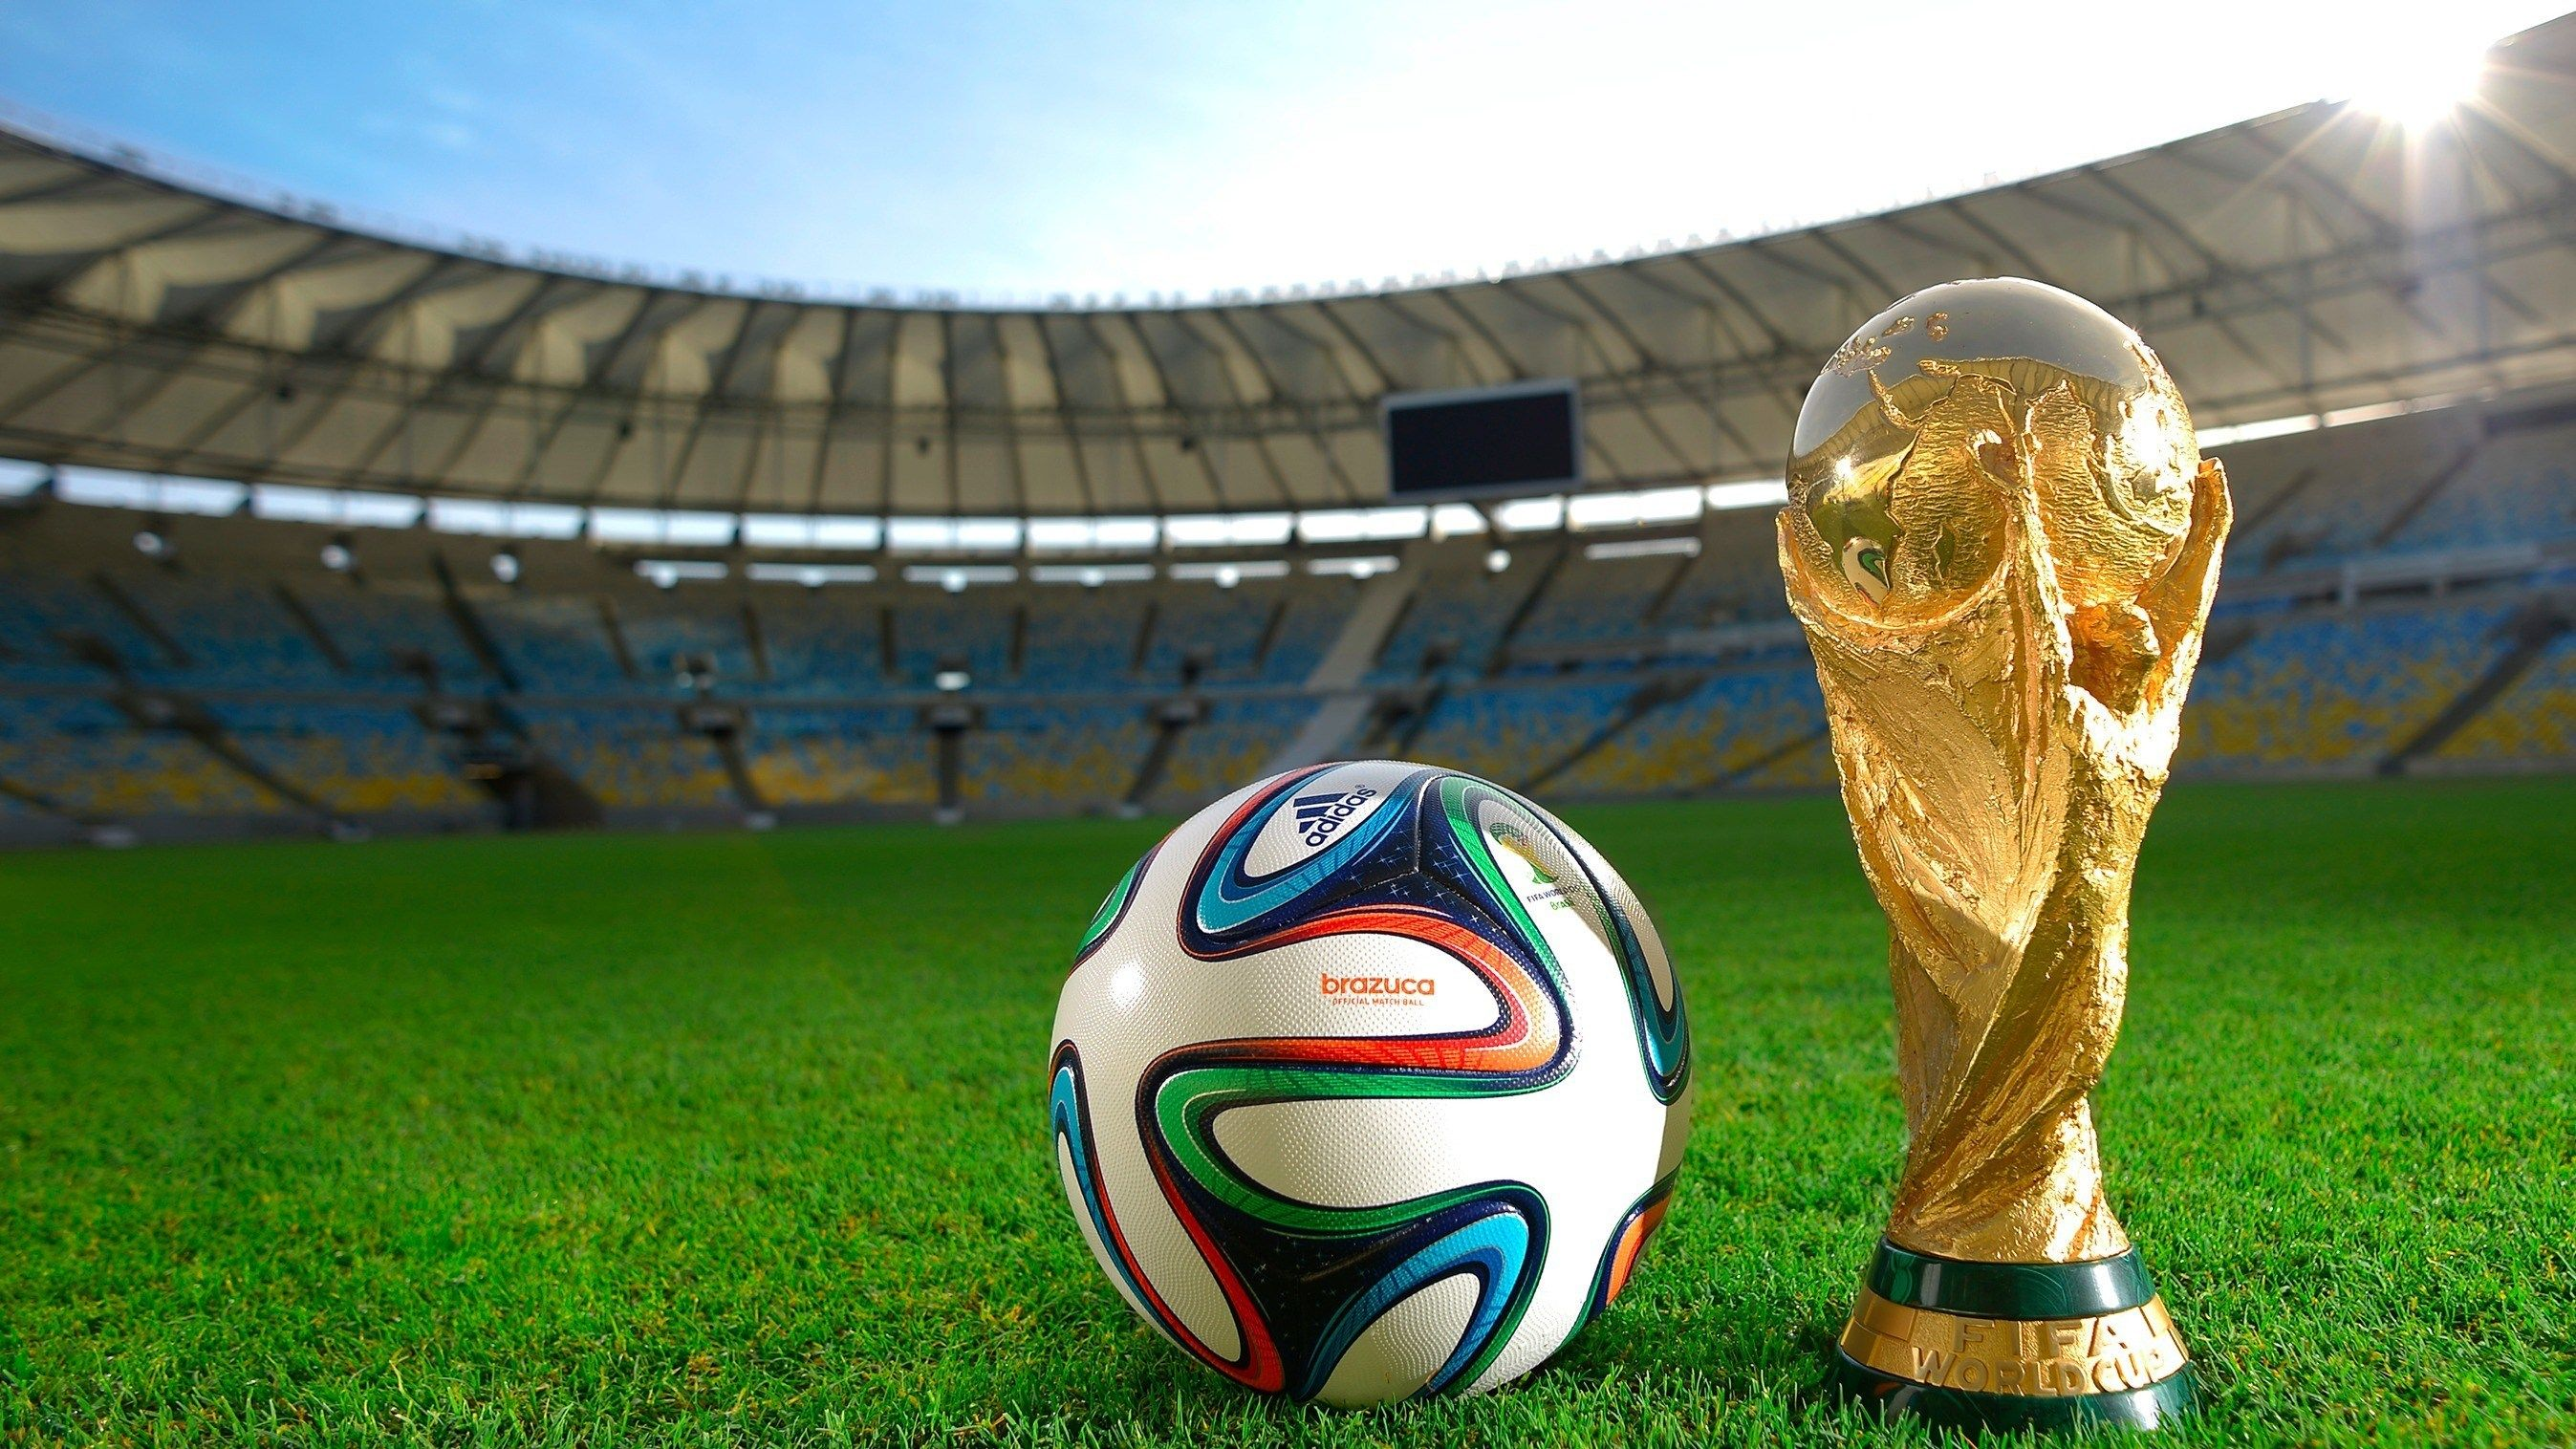 Watch Live Stream FIFA World Cup, Sports and TV Online